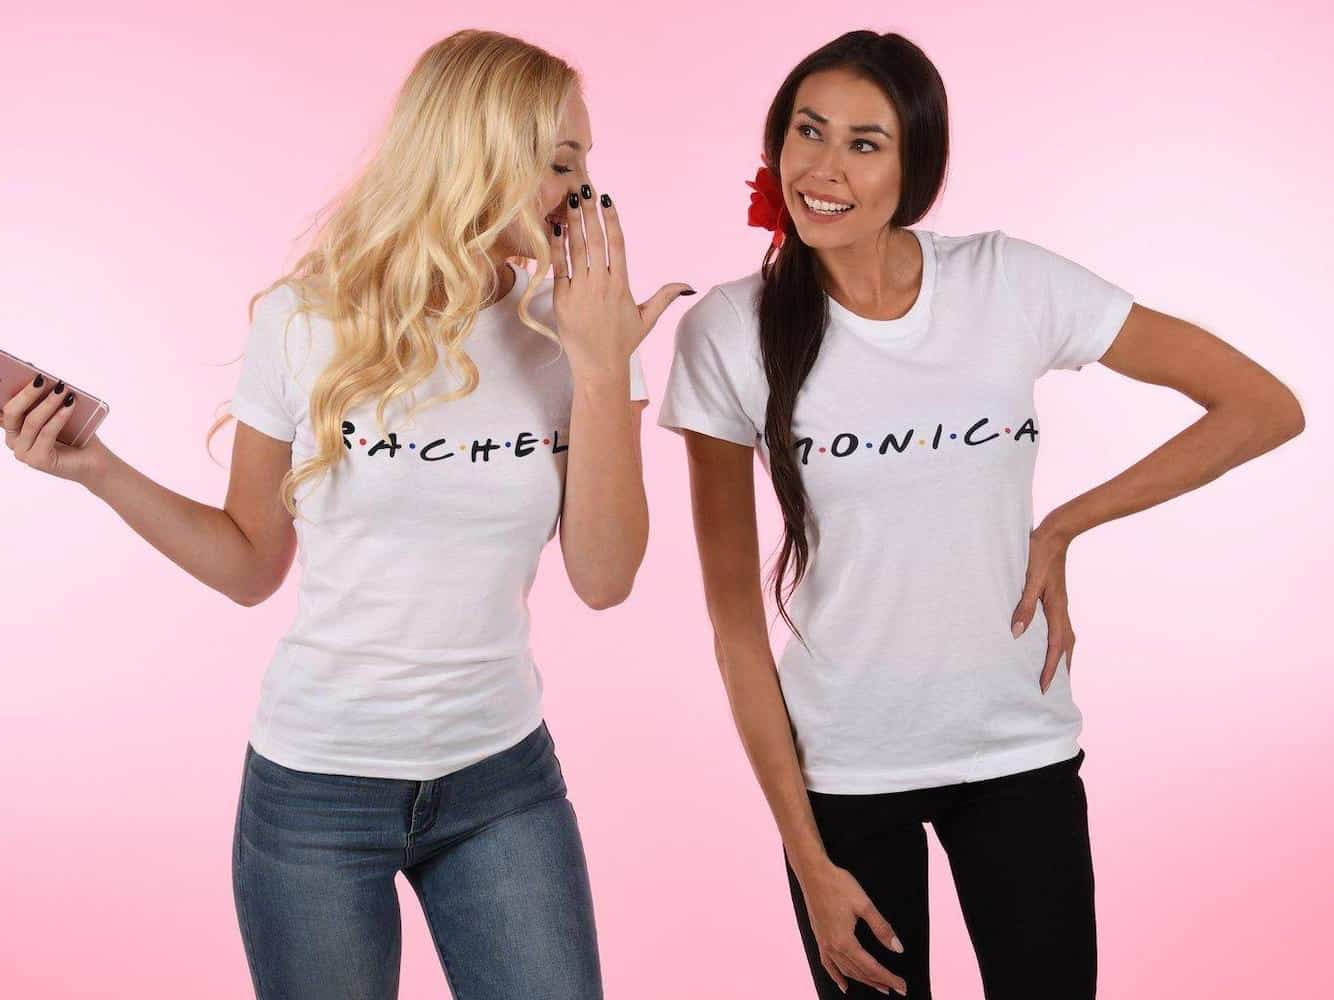 Monica And Rachel Duo T Shirt For Long Distance Friendship